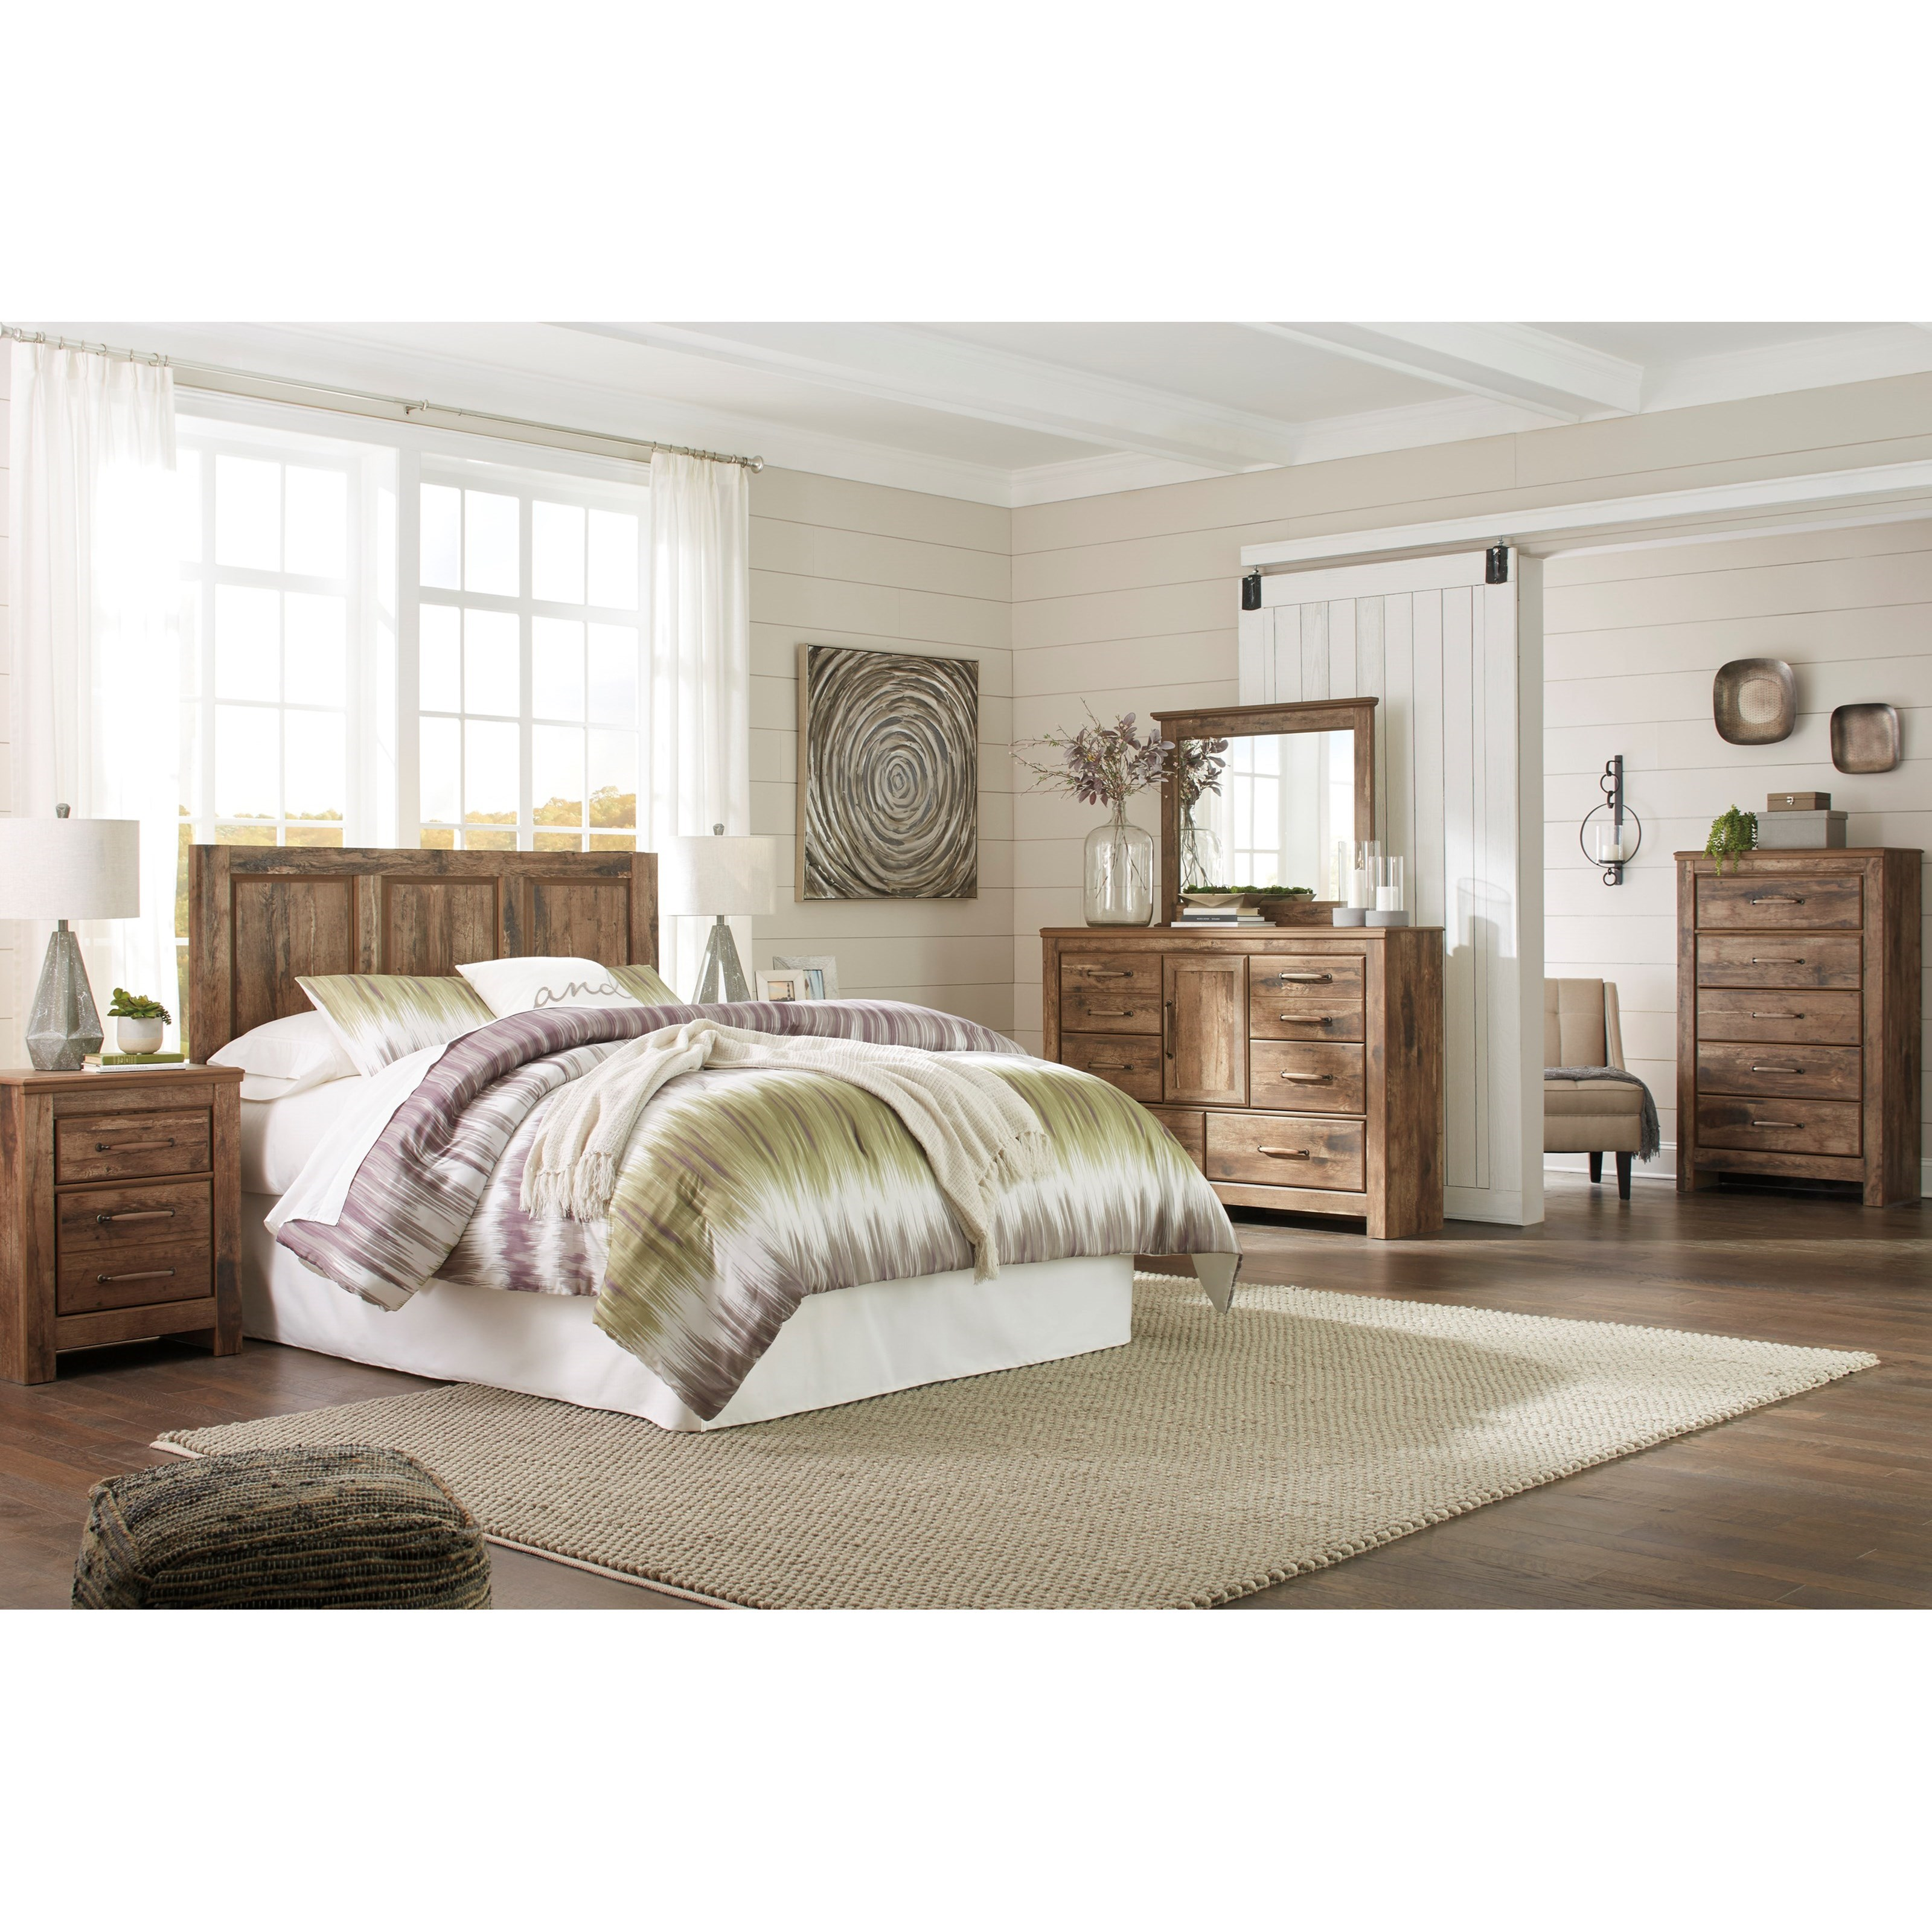 Del Sol As Blaneville B224 57 Rustic Style Queen Full